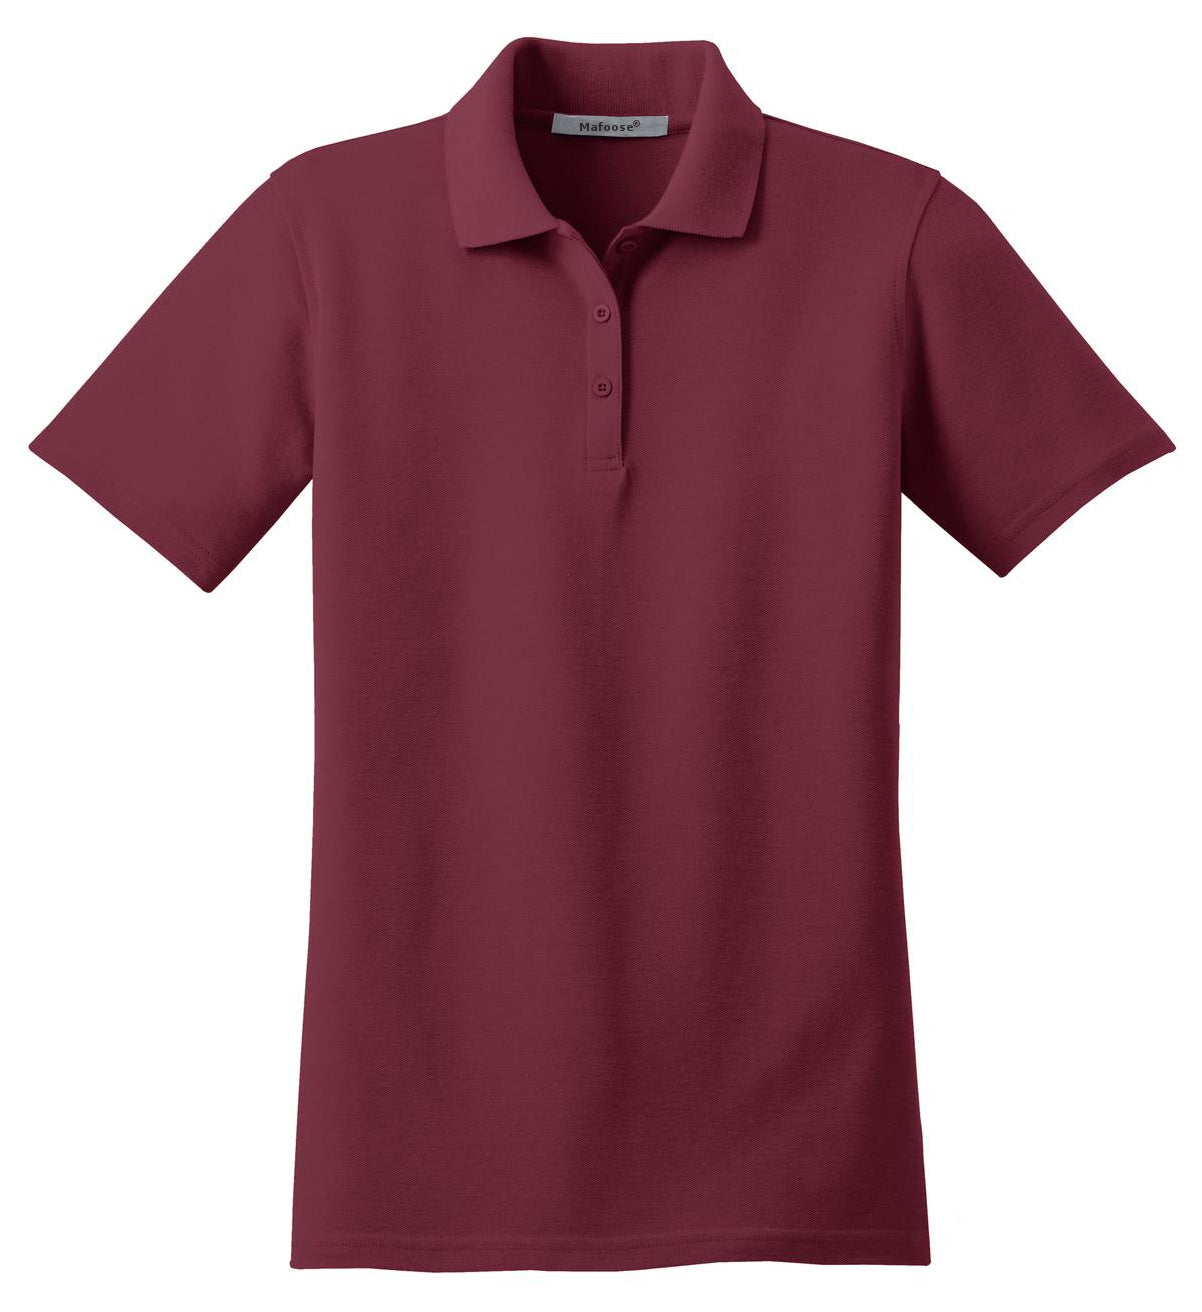 Mafoose Women's Stain Resistant Polo Shirt Burgundy-Front